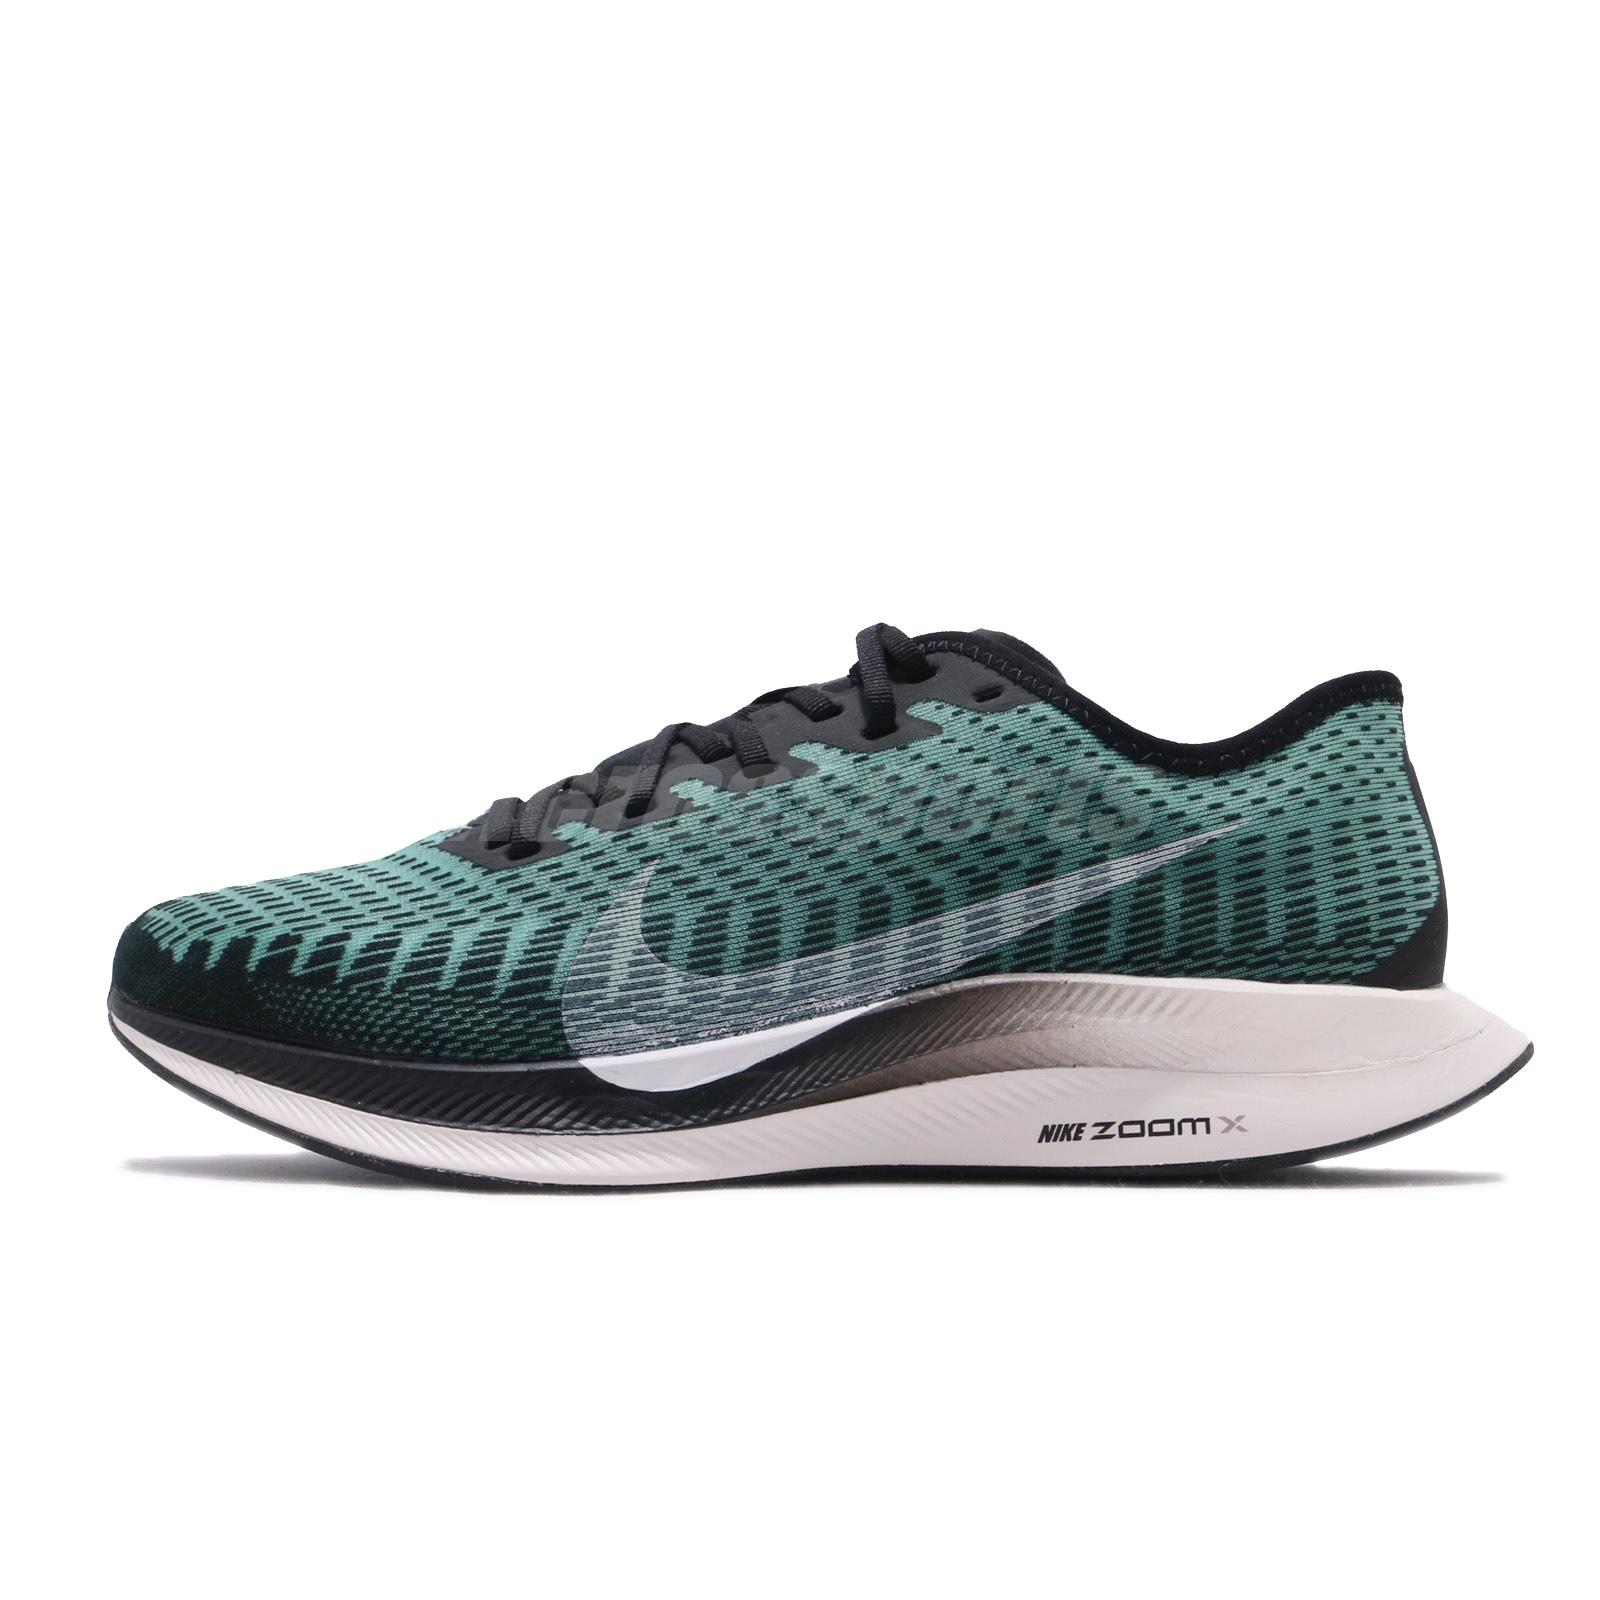 Documento Marchitar sensibilidad  Nike Zoom Pegasus Turbo 2 Black Green White Men Running Shoes Sneaker  AT2863-006 Clothing, Shoes & Accessories Athletic Shoes